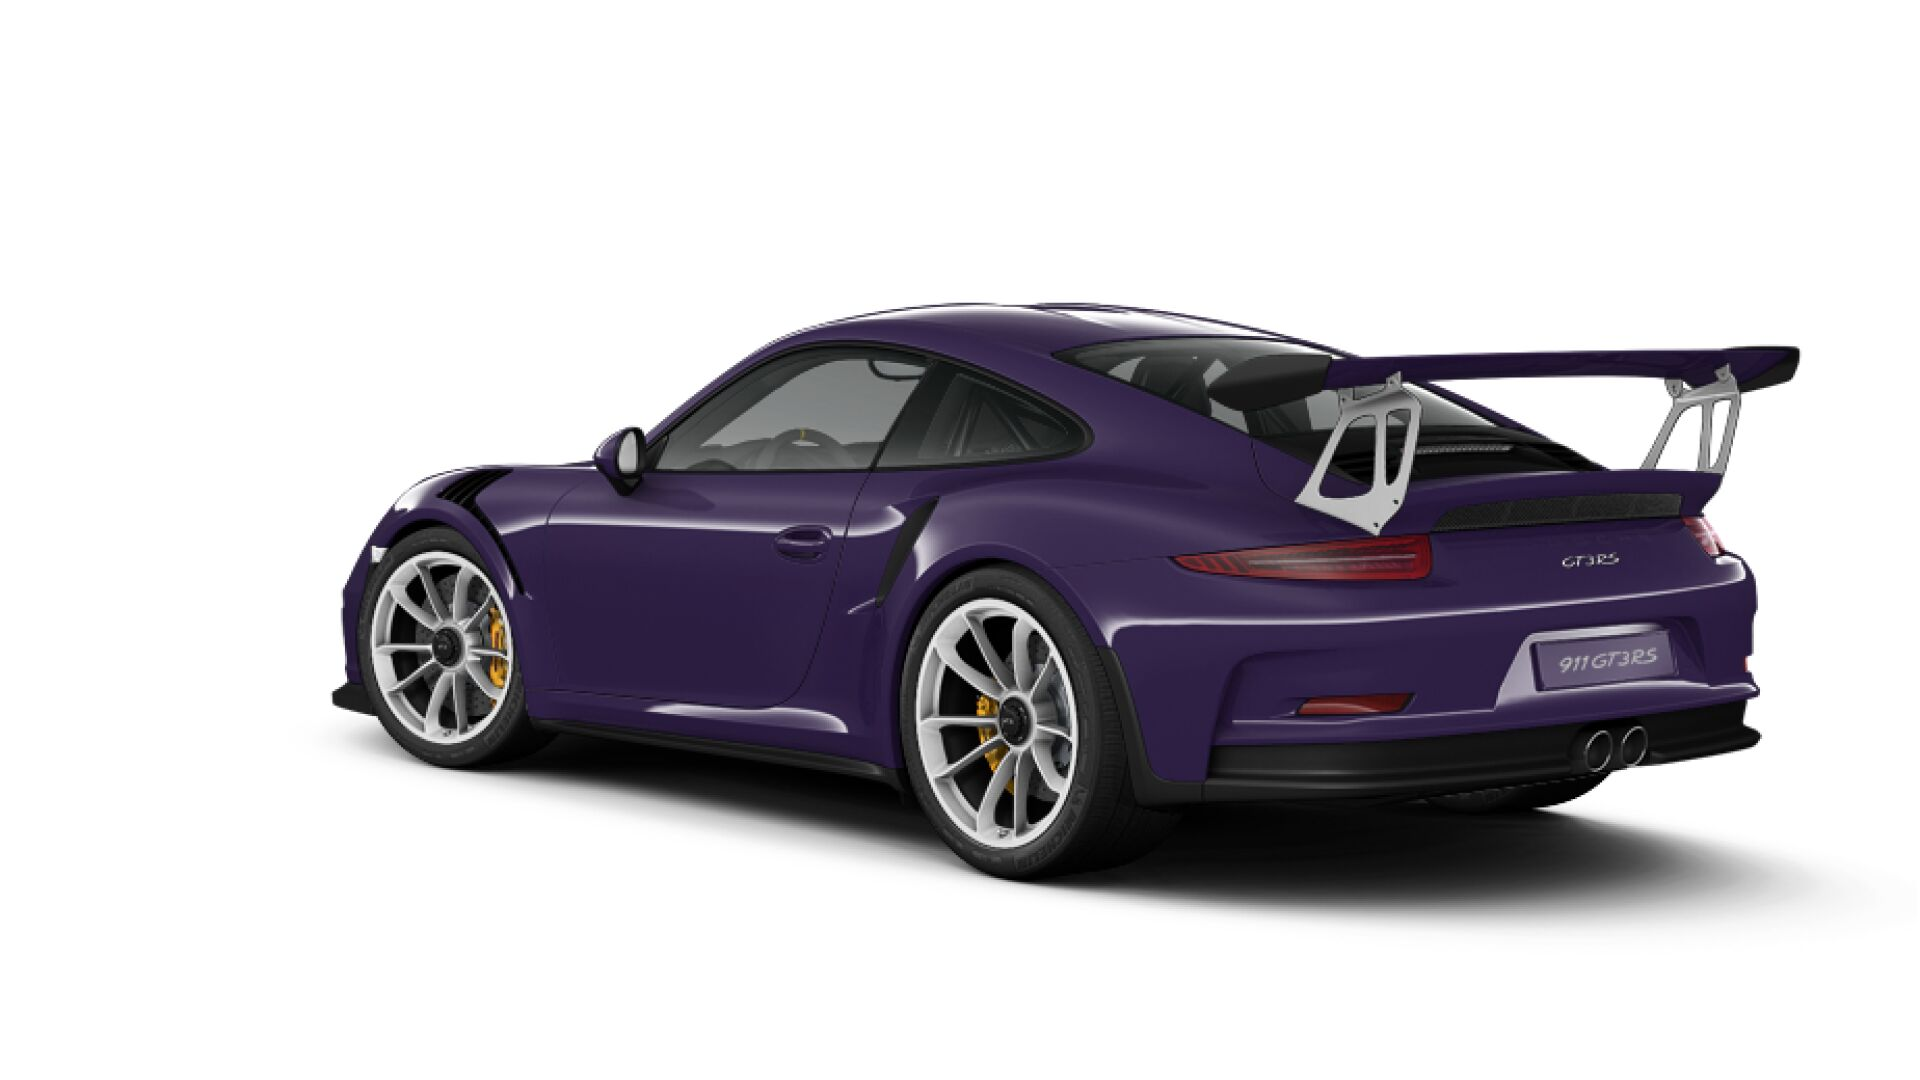 porsche 991 gt3 rs uk price drop in progress porsche. Black Bedroom Furniture Sets. Home Design Ideas